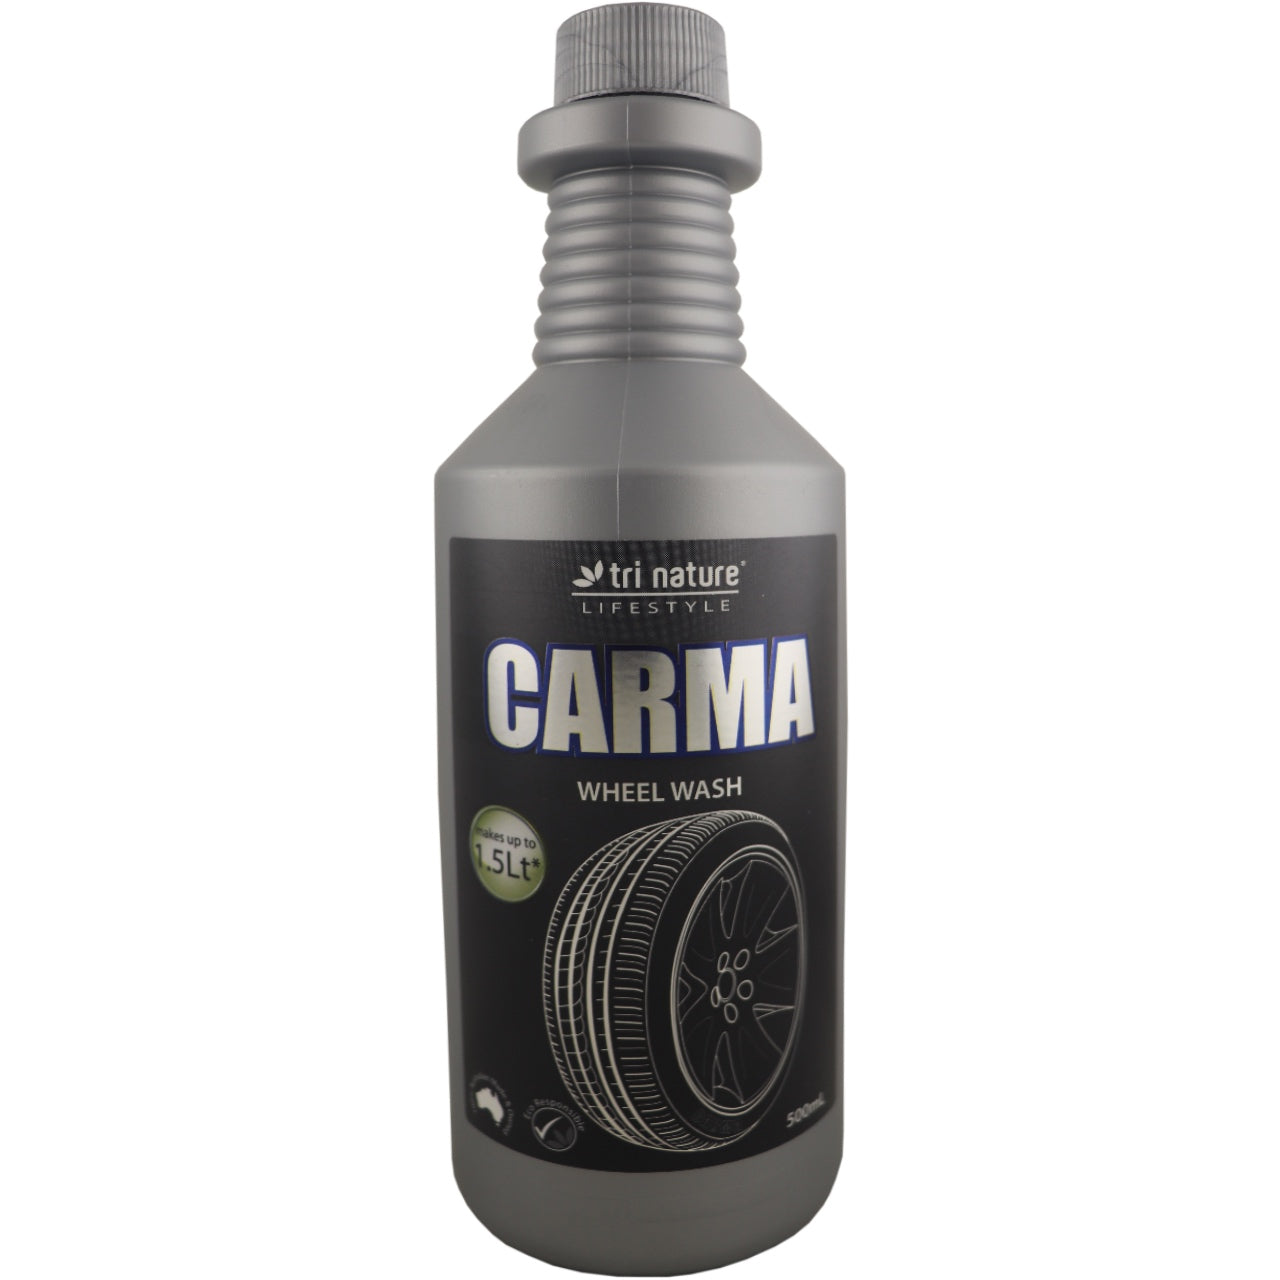 Tri Nature Carma Wheel wash